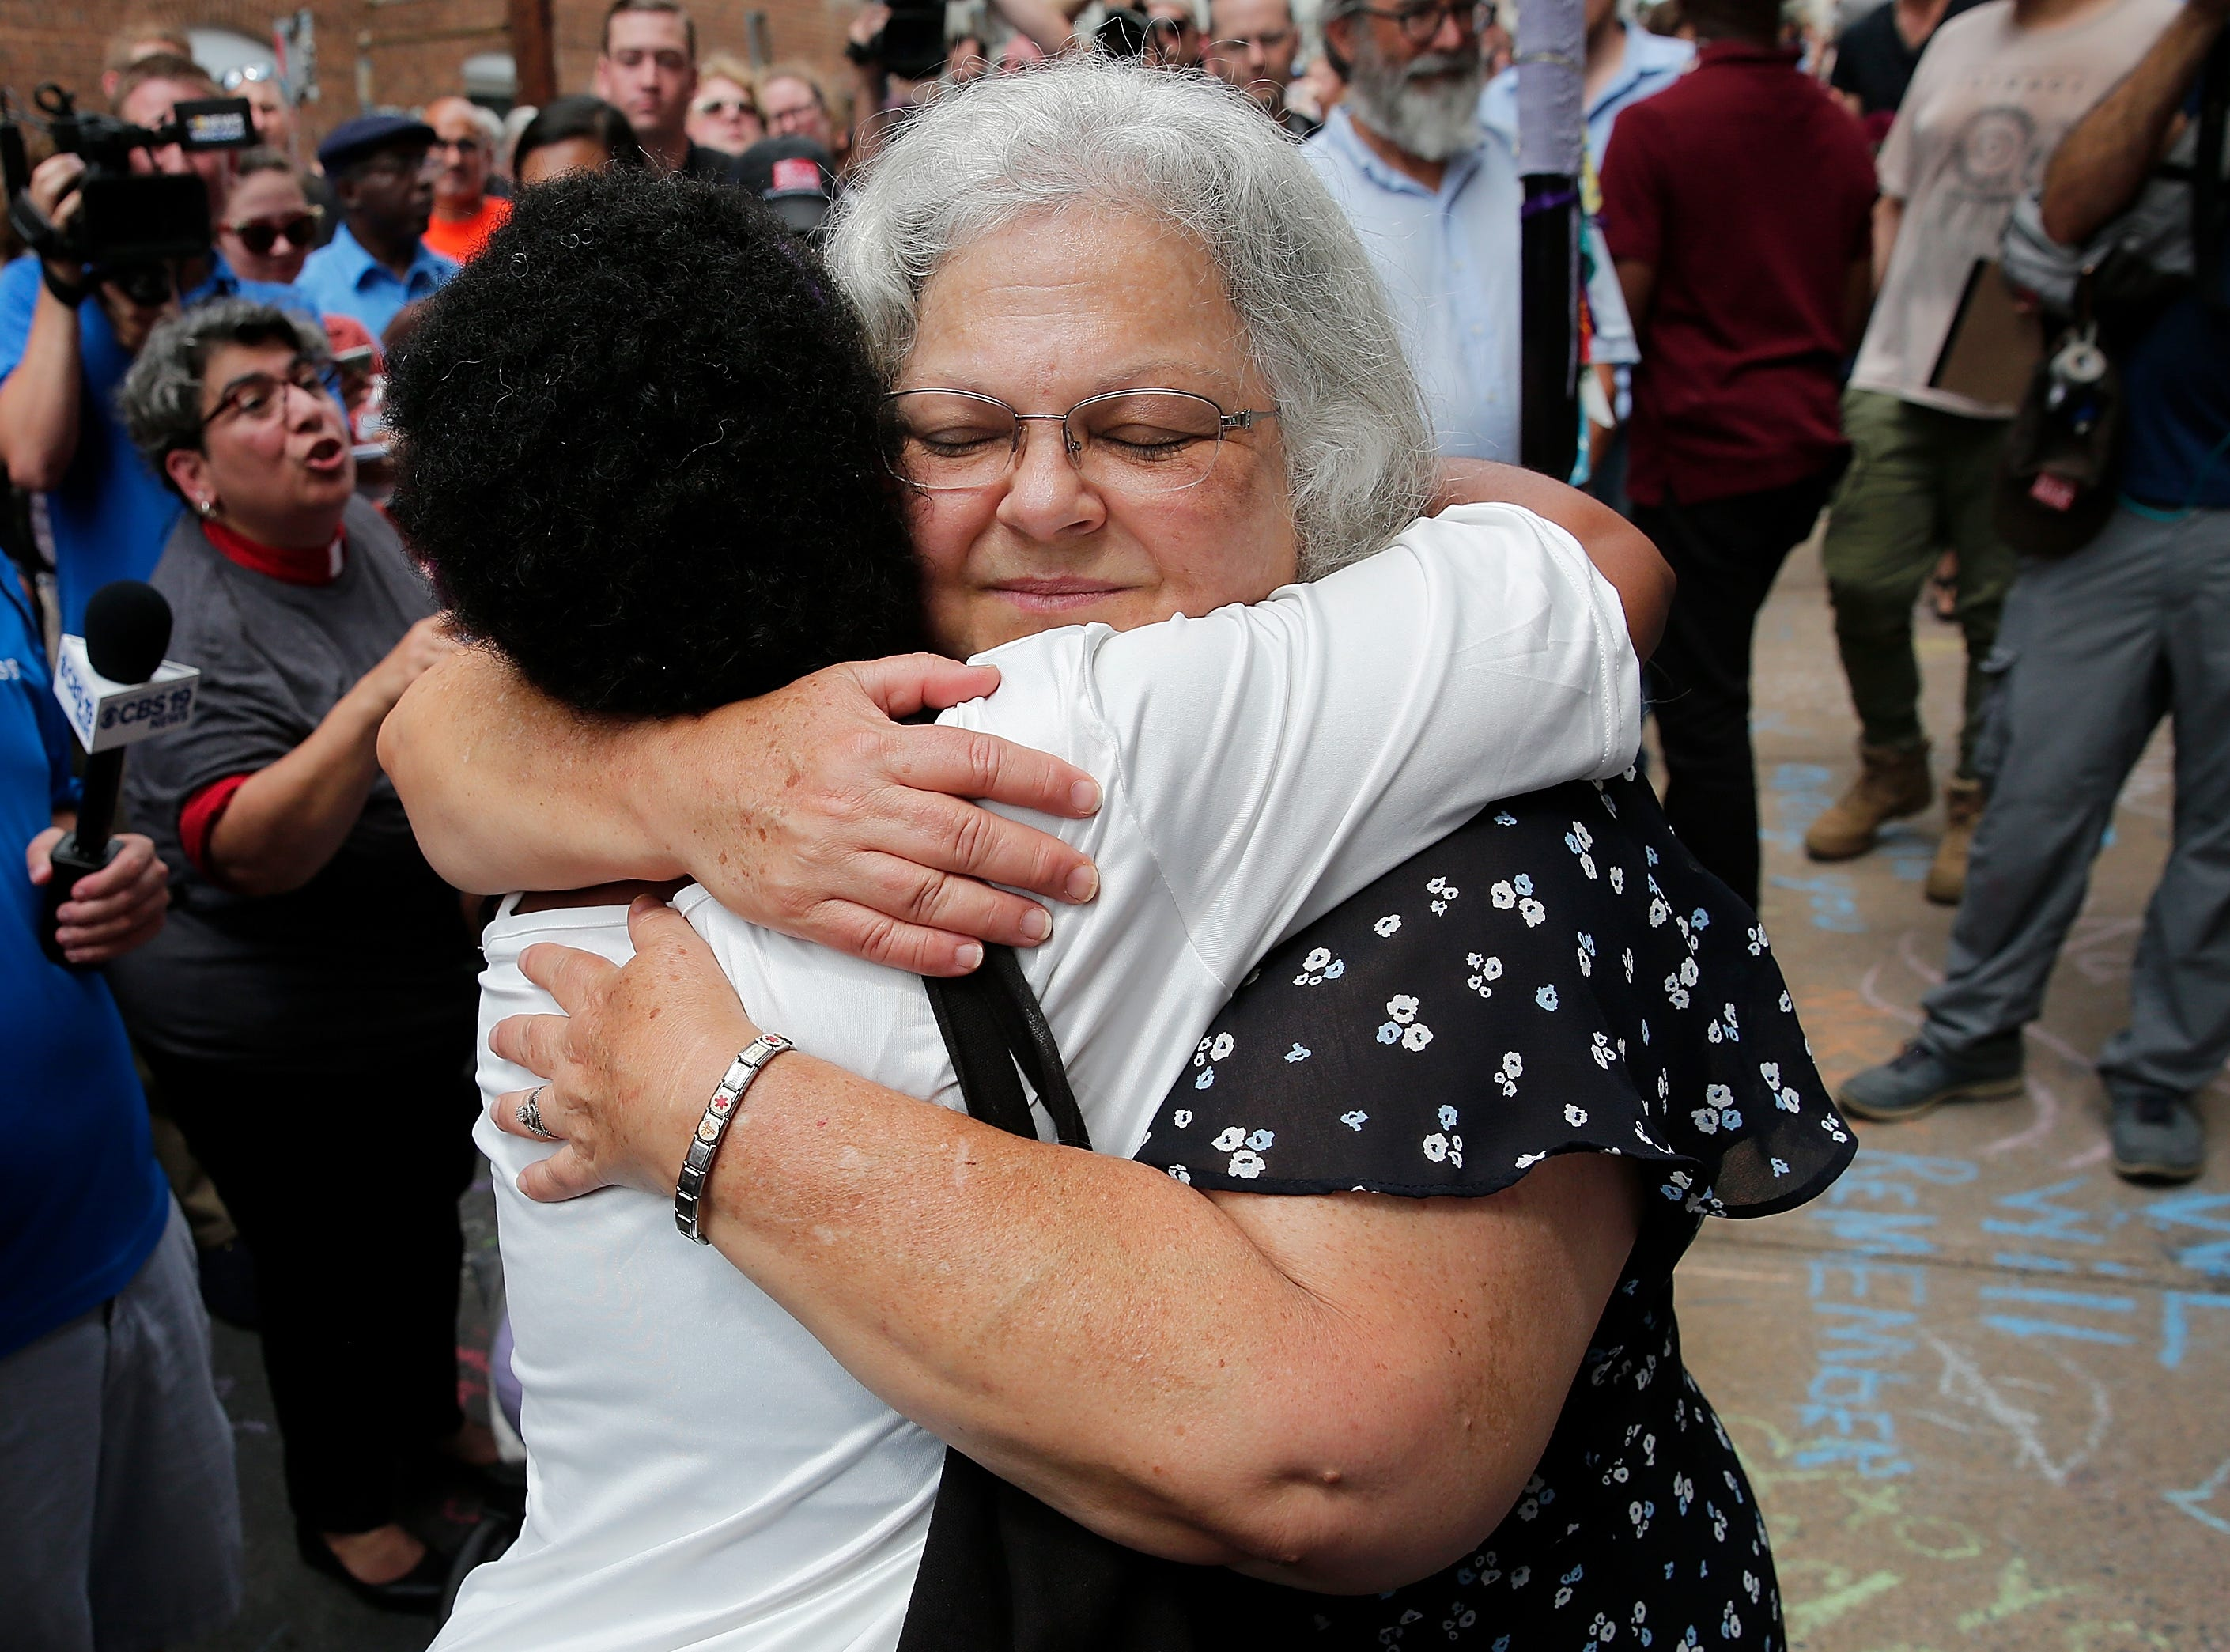 Aug. 12, 2018: Susan Bro (R), mother of Heather Heyer, hugs a young woman near a makeshift memorial for her daughter Heather who was killed one year ago during a deadly clash in Charlottesville, Va. Charlottesville has been declared in a state of emergency by Virginia Gov. Ralph Northam as the city braces for the one year anniversary of the deadly clash between white supremacist forces and counter protesters over the potential removal of Confederate statues of Robert E. Lee and Jackson.